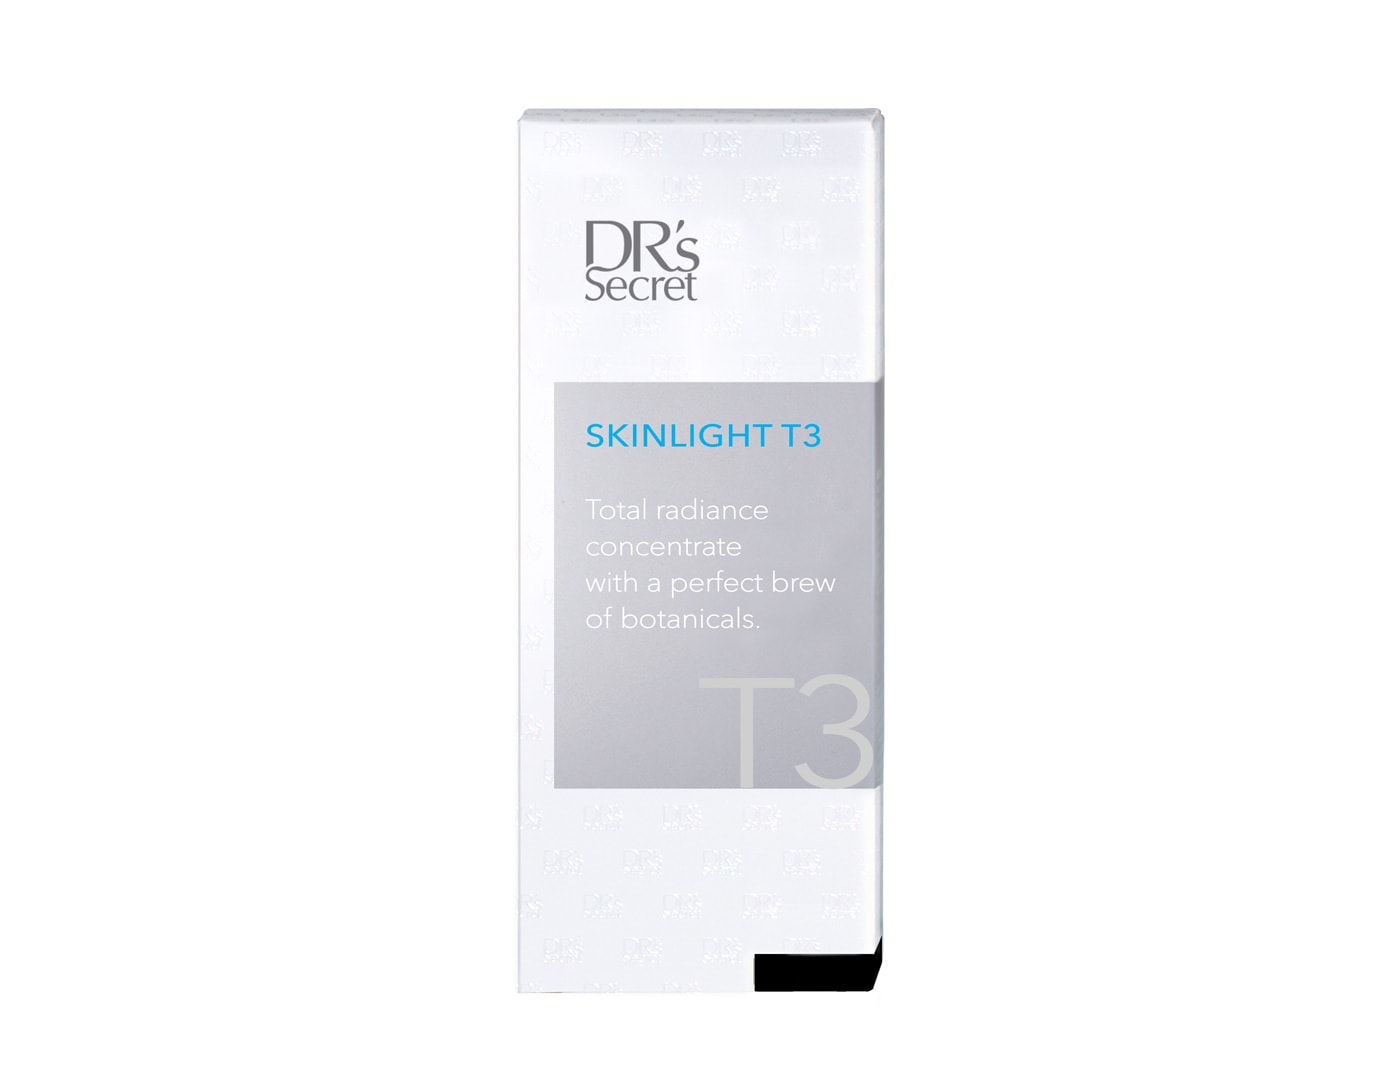 DR's Secret Skinlight T3 box front packaging